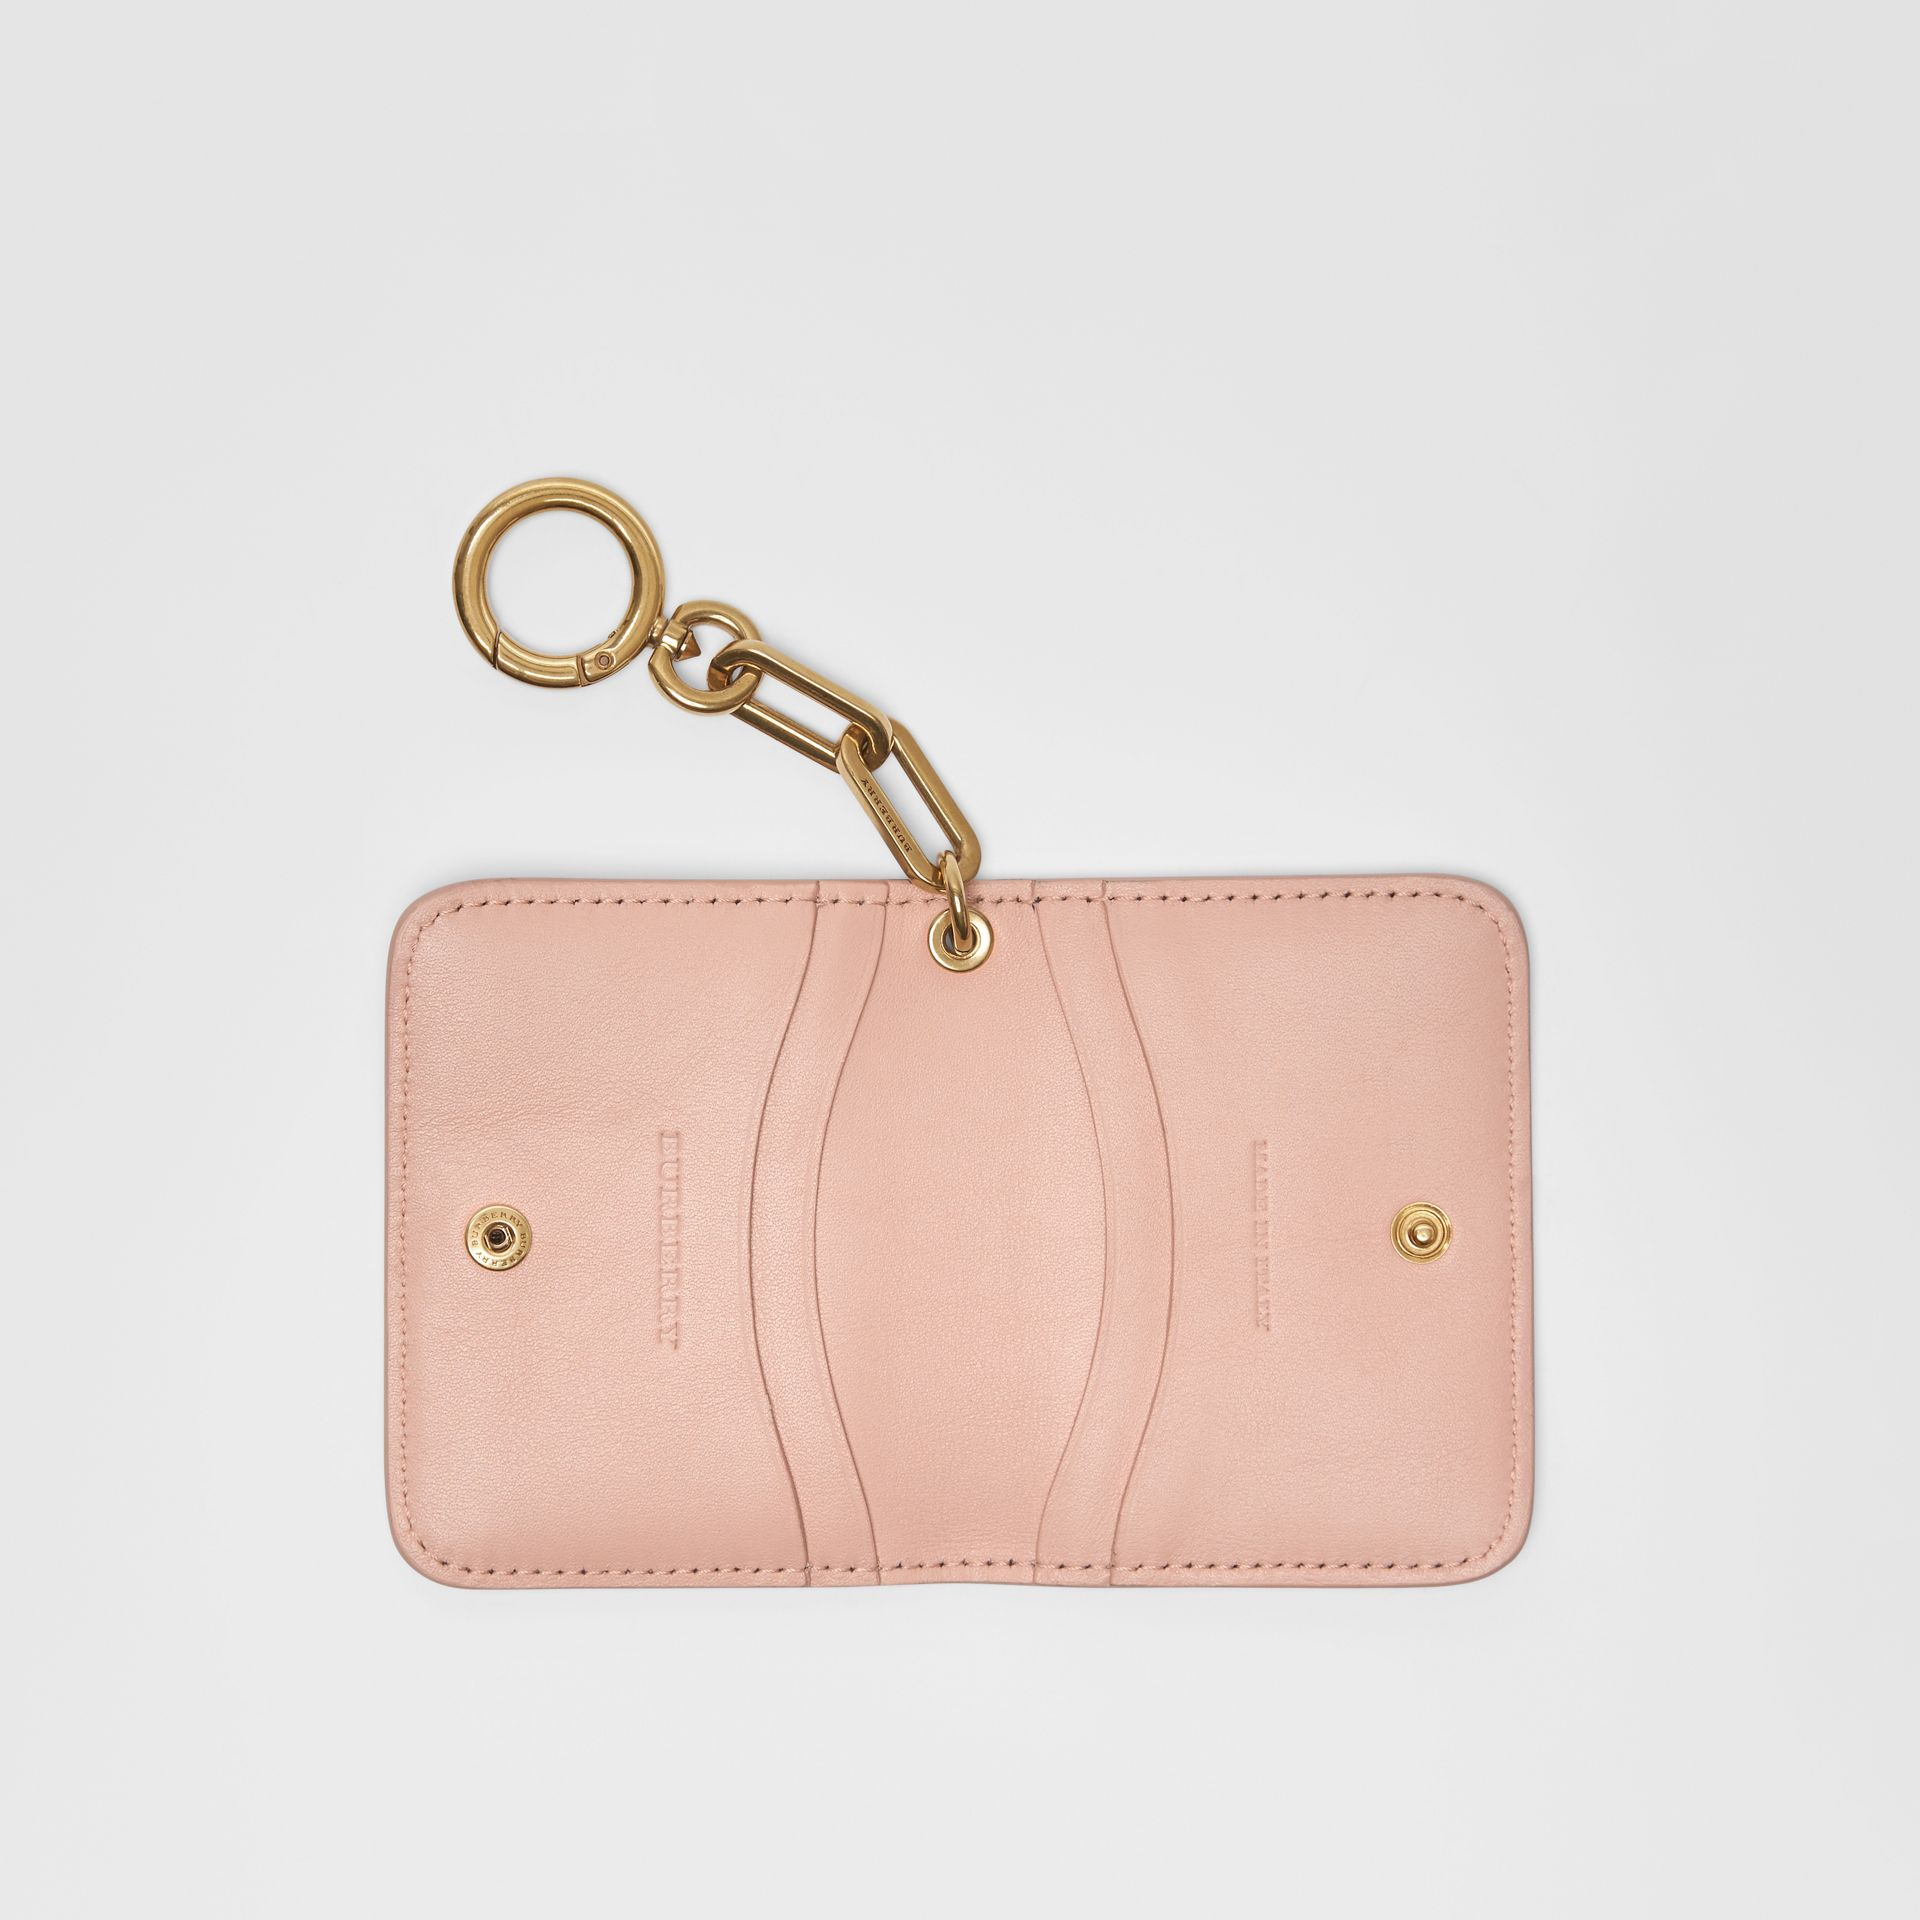 Link Detail Patent Leather ID Card Case Charm in Pale Fawn Pink - Women | Burberry United States - gallery image 3